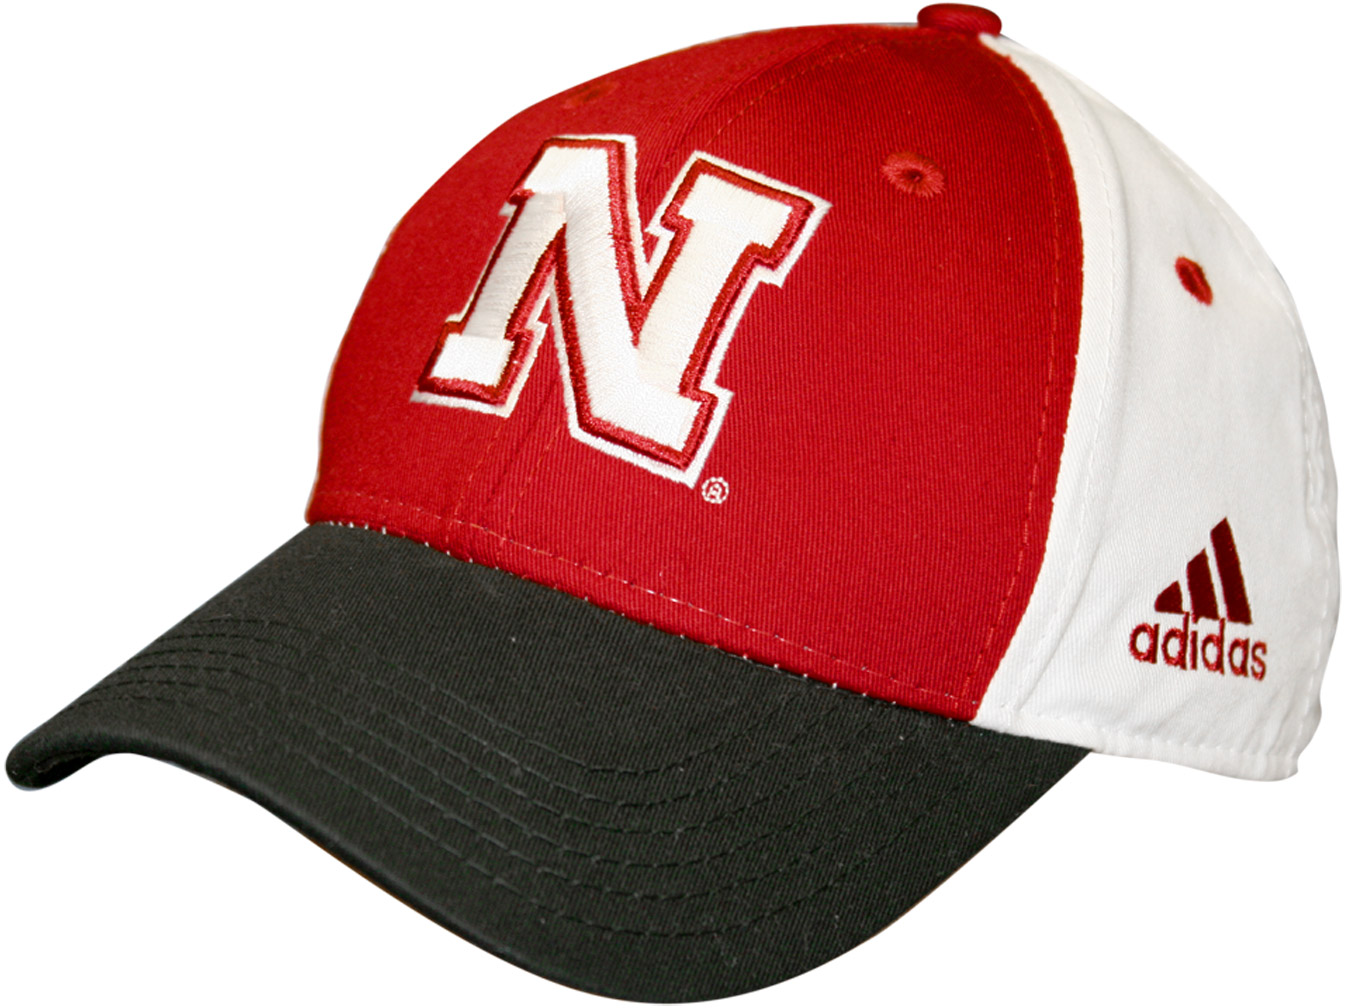 Color Block Adjustable Hat Toddler Nebraska Cornhuskers, husker football, nebraska cornhuskers merchandise, nebraska merchandise, husker merchandise, nebraska cornhuskers apparel, husker apparel, nebraska apparel, husker childrens apparel, nebraska cornhuskers childrens apparel, nebraska kids apparel, husker kids apparel, husker kids merchandise, nebraska cornhuskers kids merchandise,Color Block Adjustable Hat Toddler